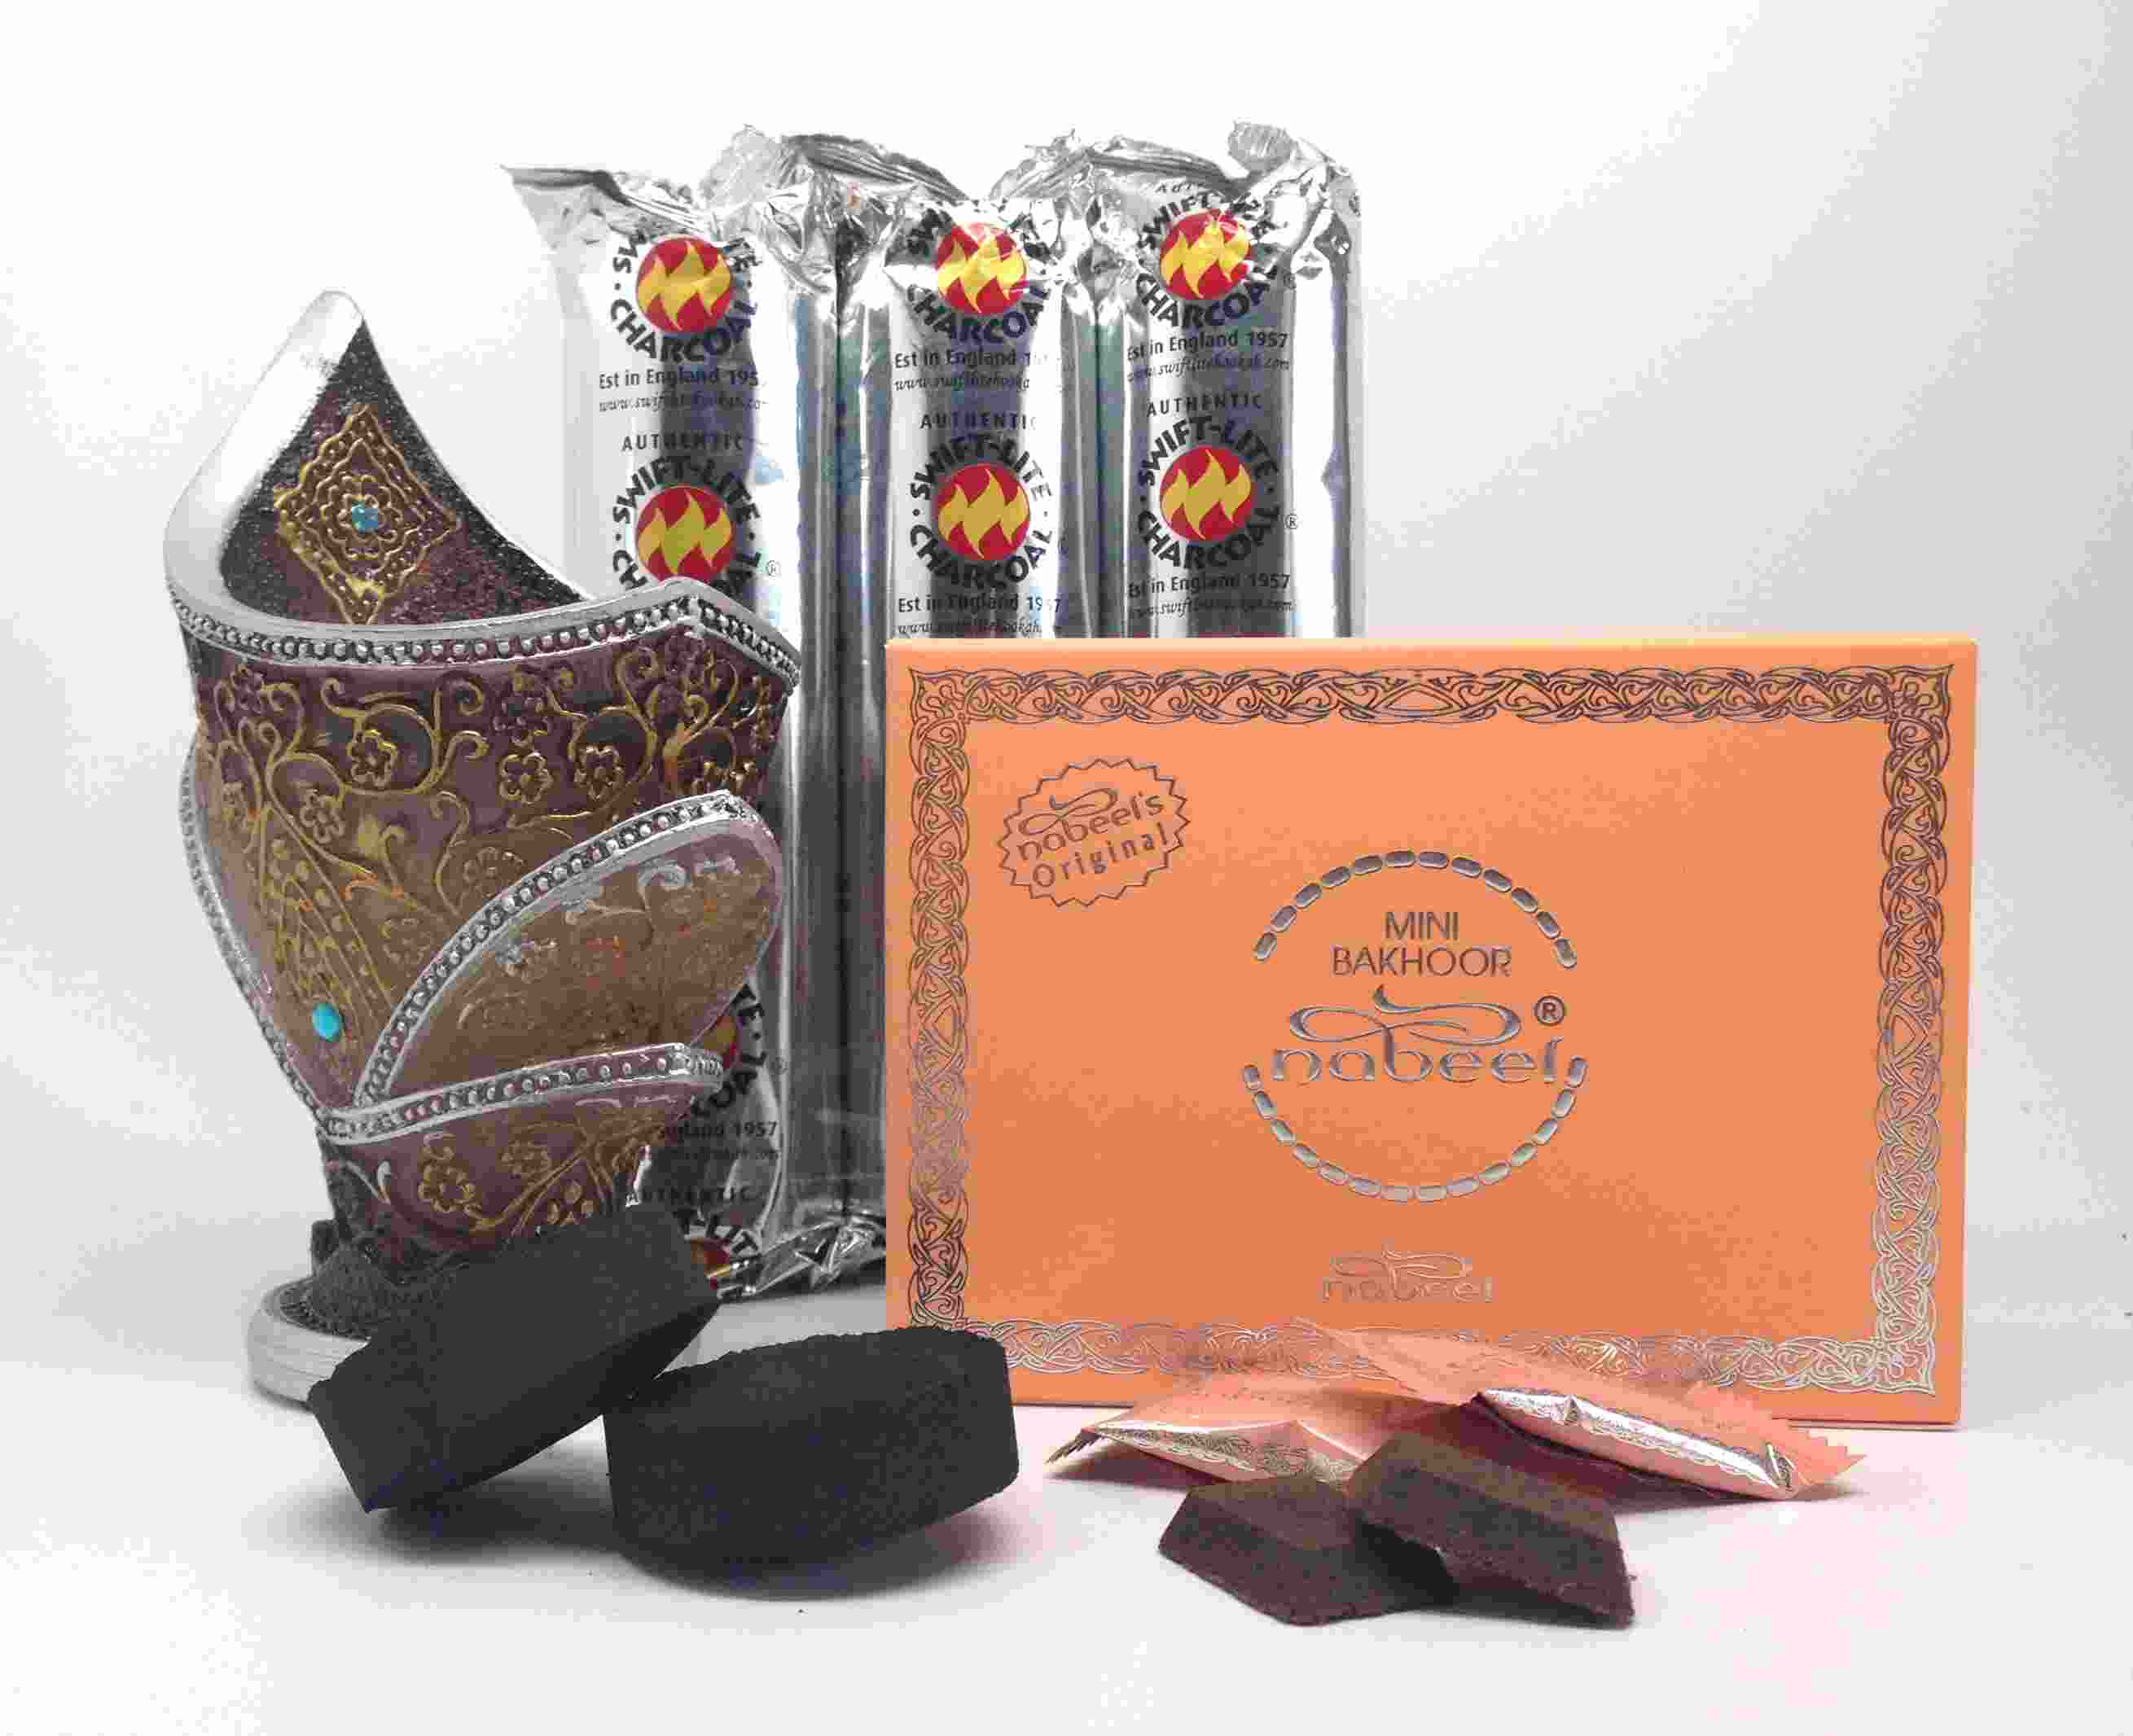 Mini Bakhoor NABEEL  (Touch Me) INCENSE GIFT SET by Nabeel